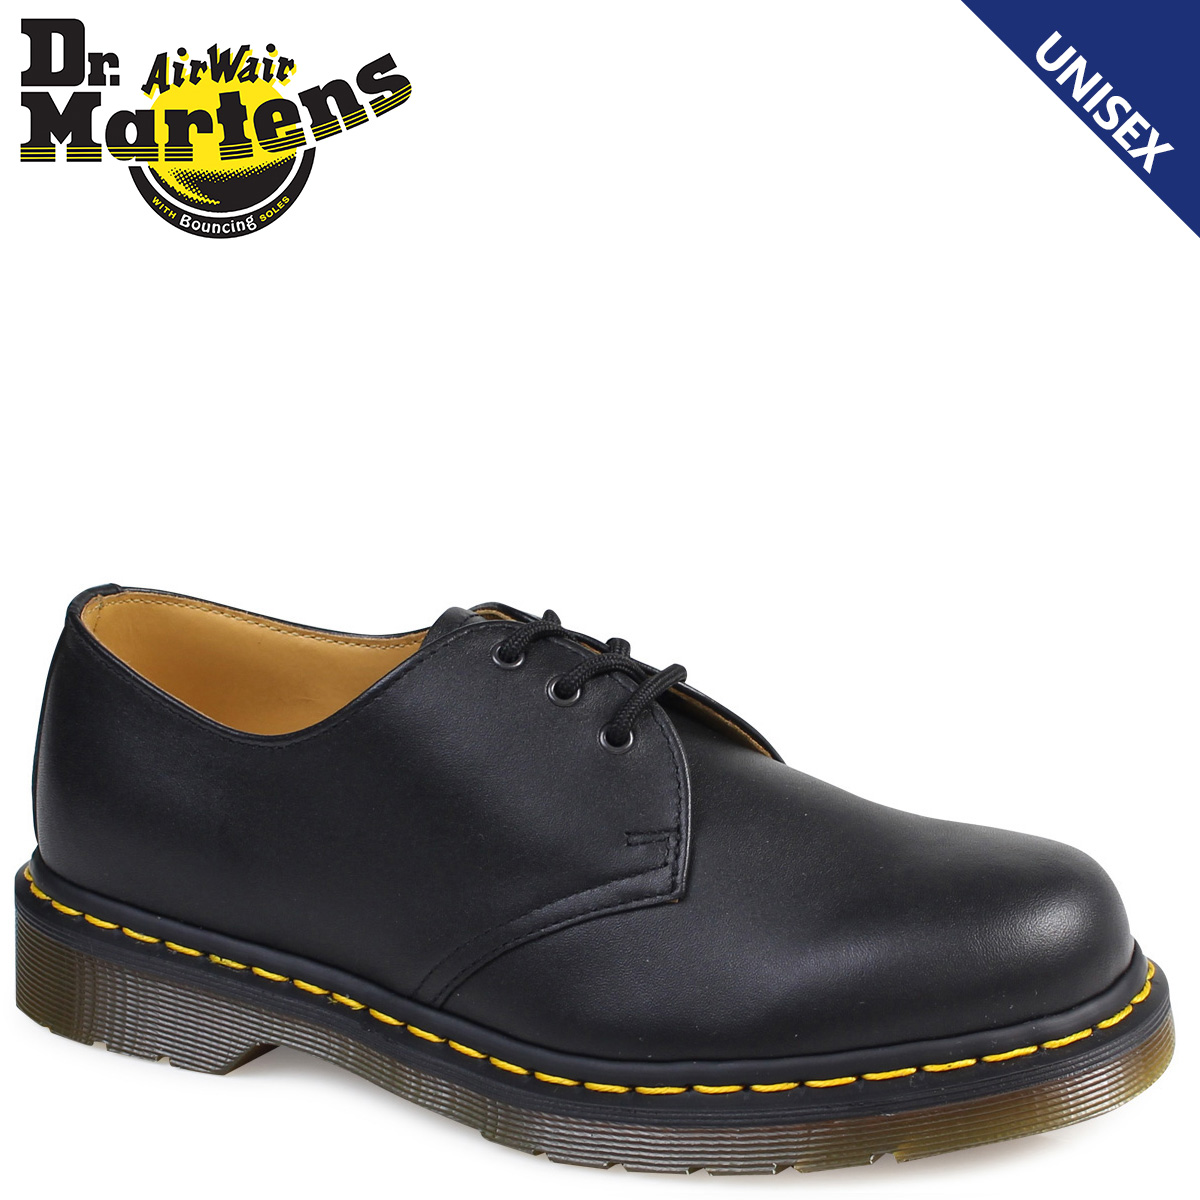 Sugar Online Shop  Dr. Martens Dr.Martens 1461 3 Hall shoes R11838001  MATERIAL UPDATES nappa leather mens Womens 3 EYE SHOE GIBSON  03890d01b1cc